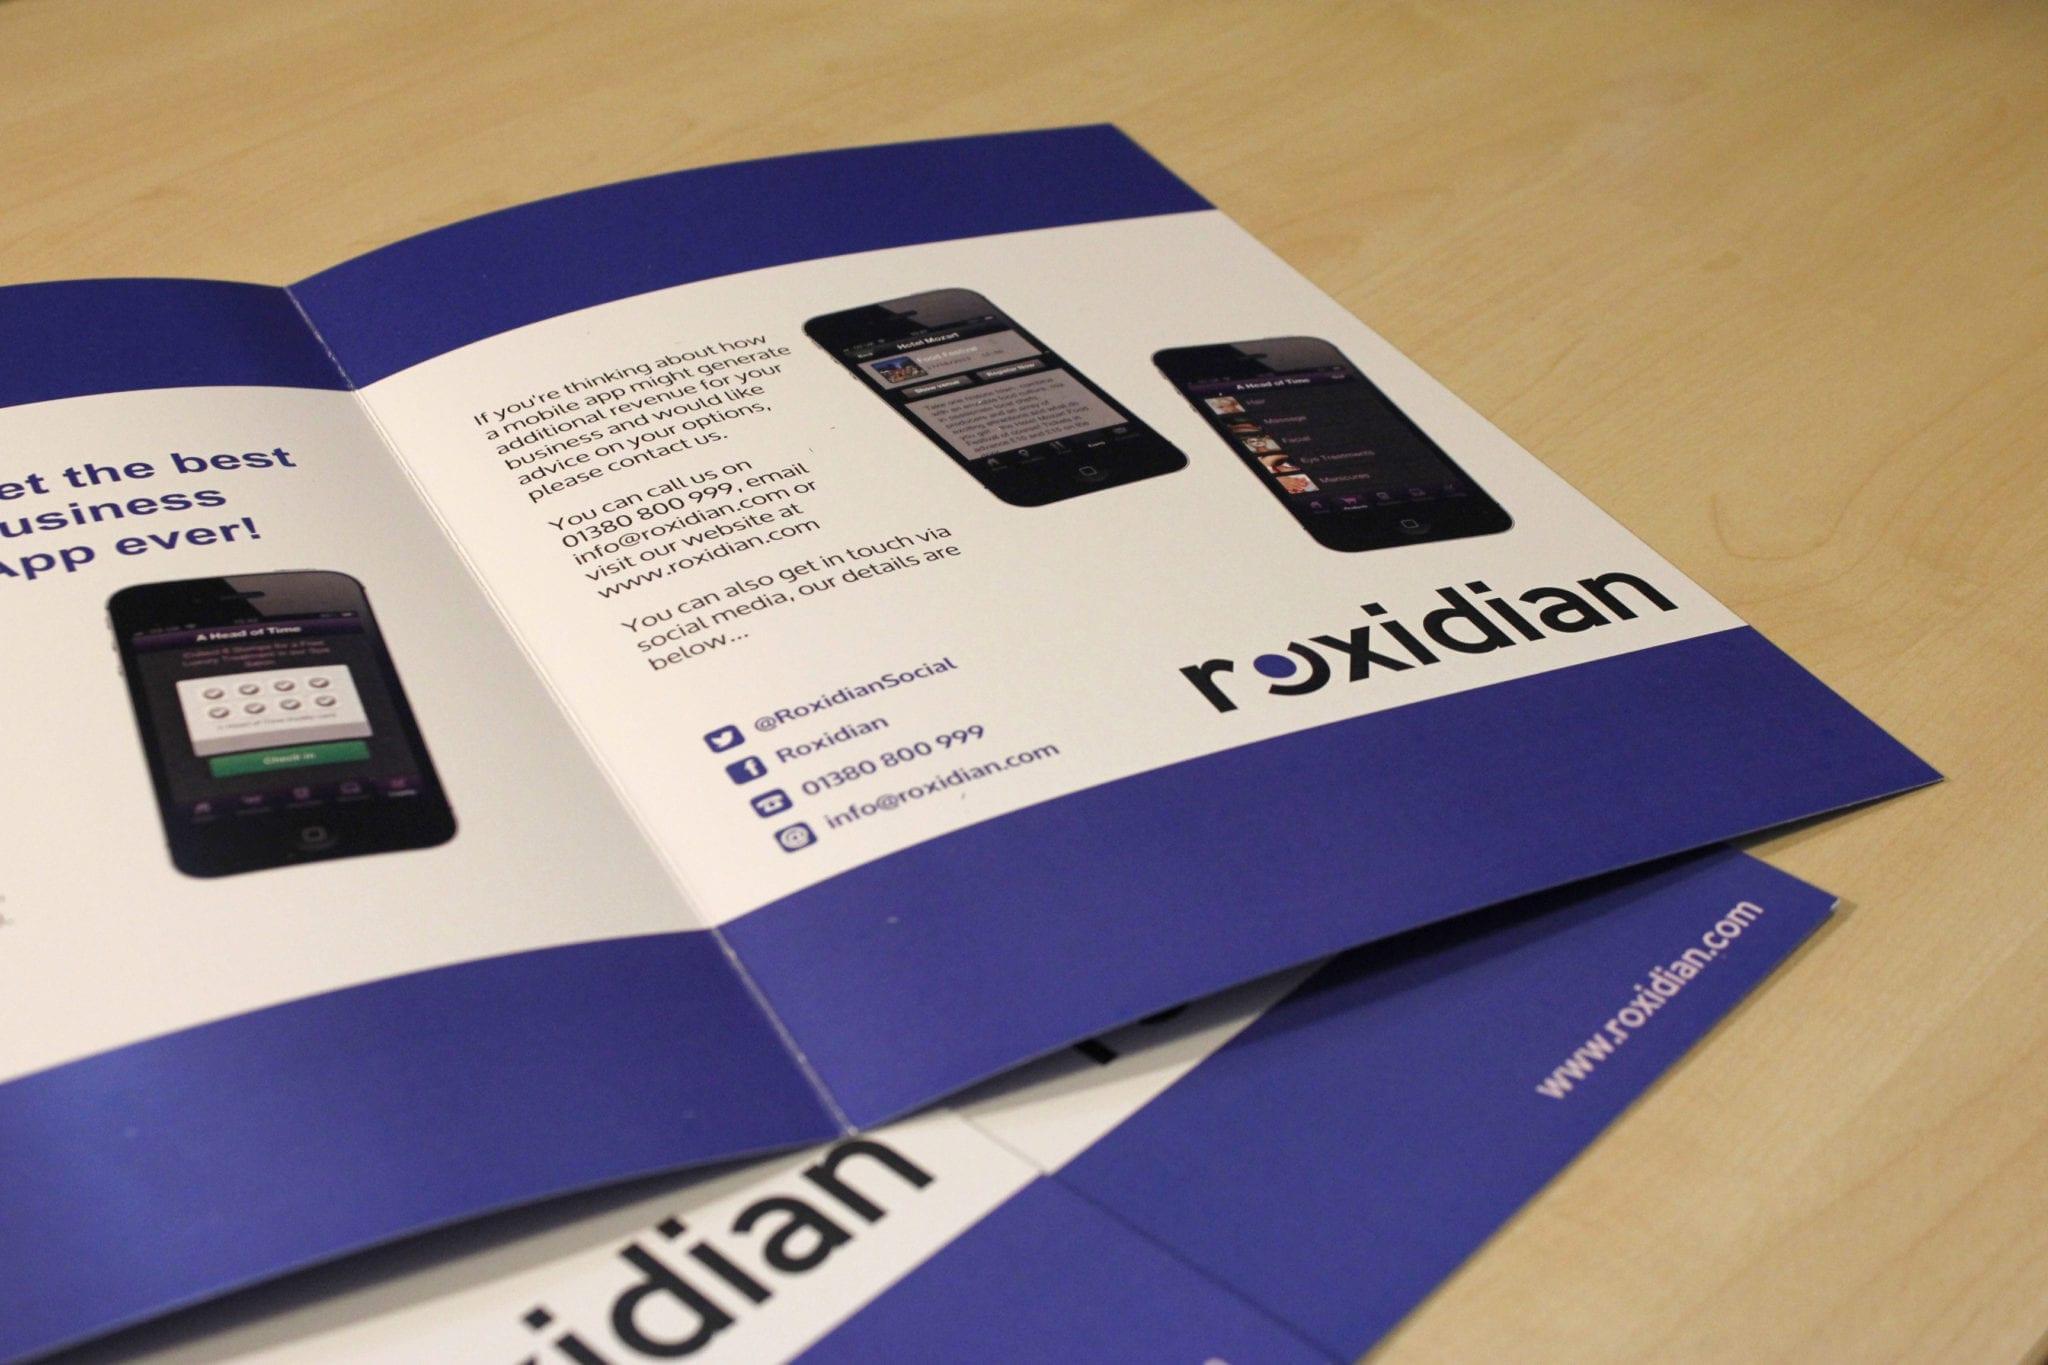 design-and-print-of-promotional-materials-for-roxidian.jpg